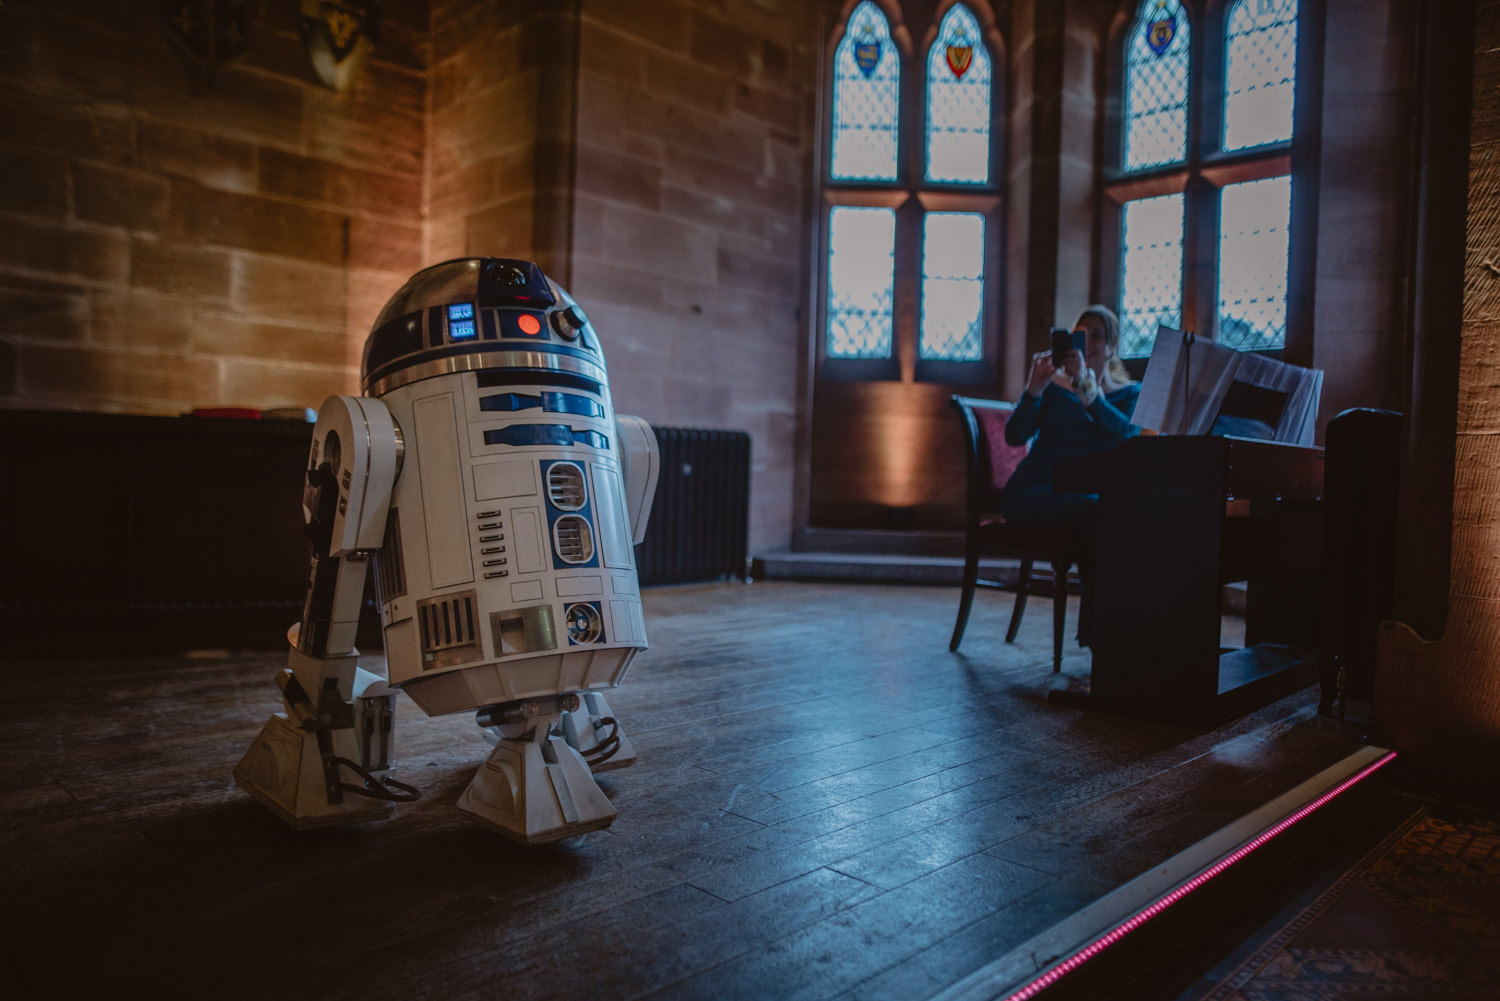 R2D2 in a wedding ceremony